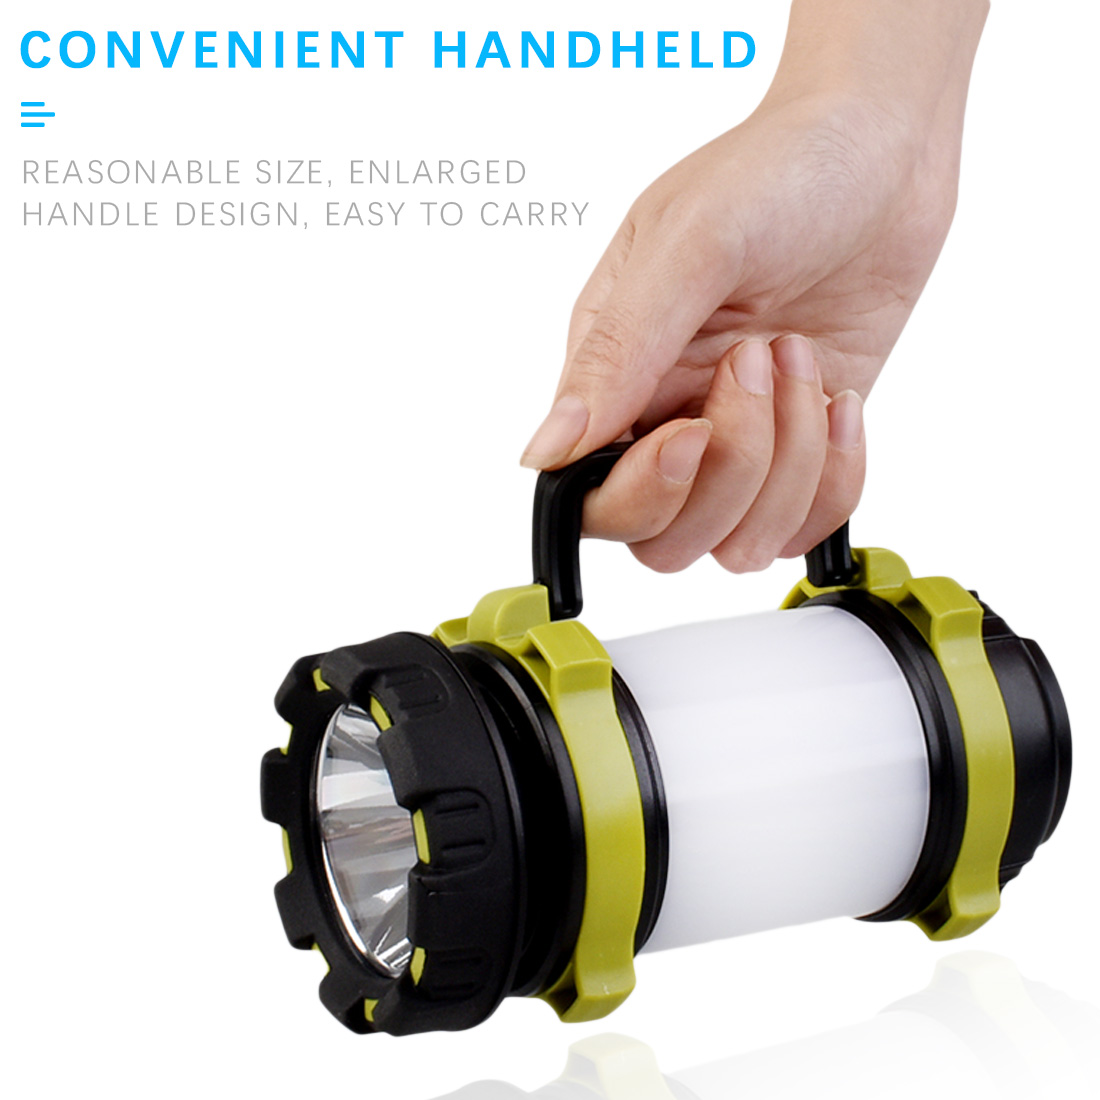 Portable LED Camping Light Working Light Outdoor Tent Light Handheld Flashlight USB Rechargeable Waterproof Search Light